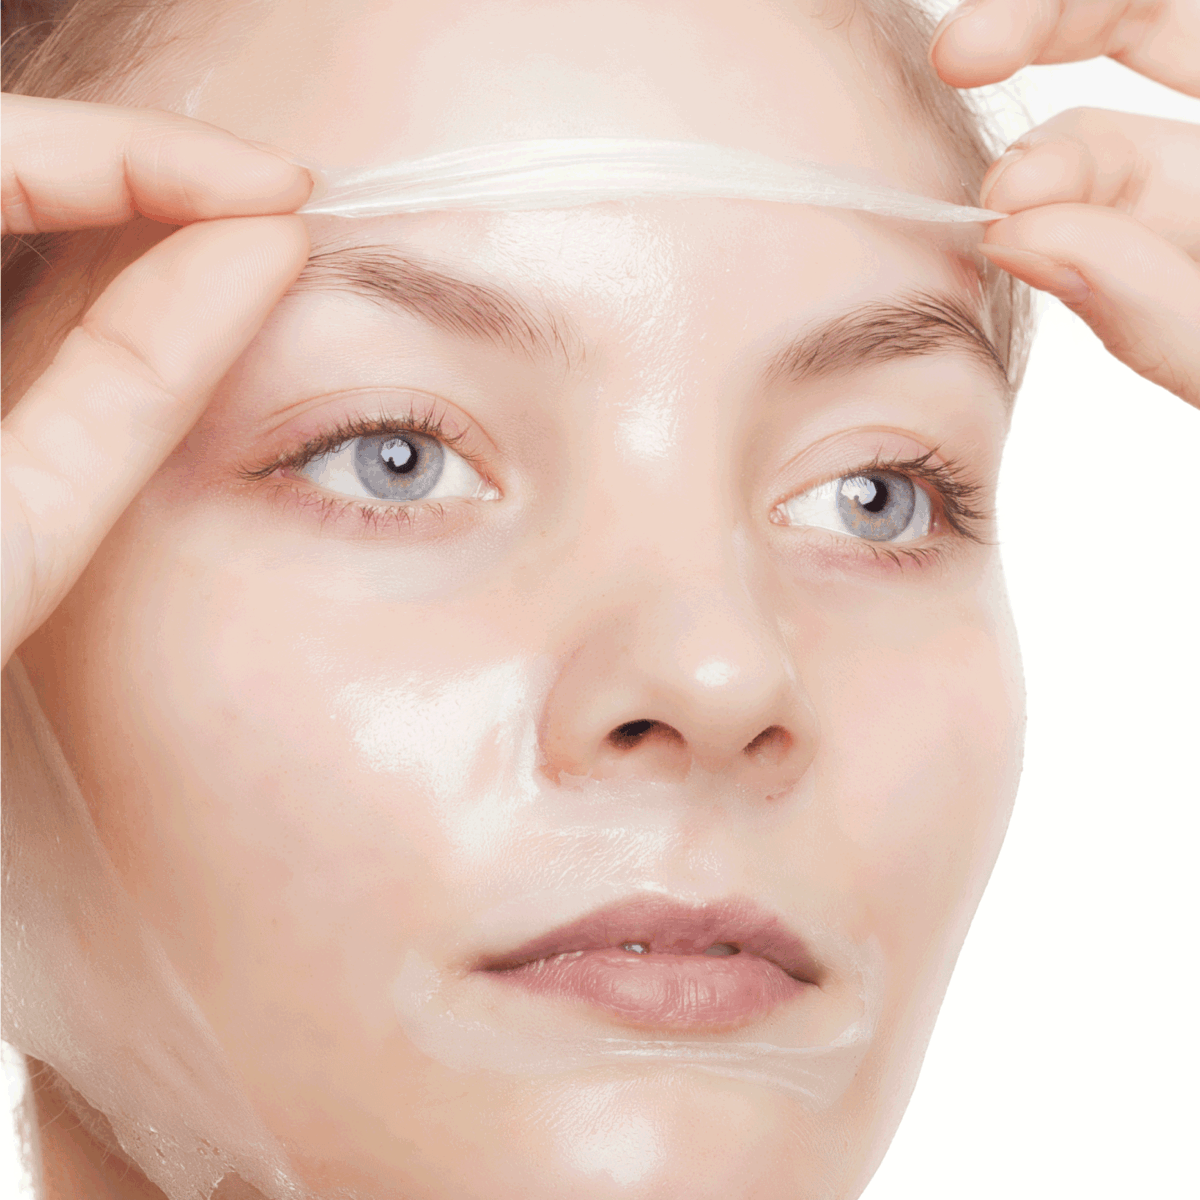 Portrait of girl young woman in facial peel off mask